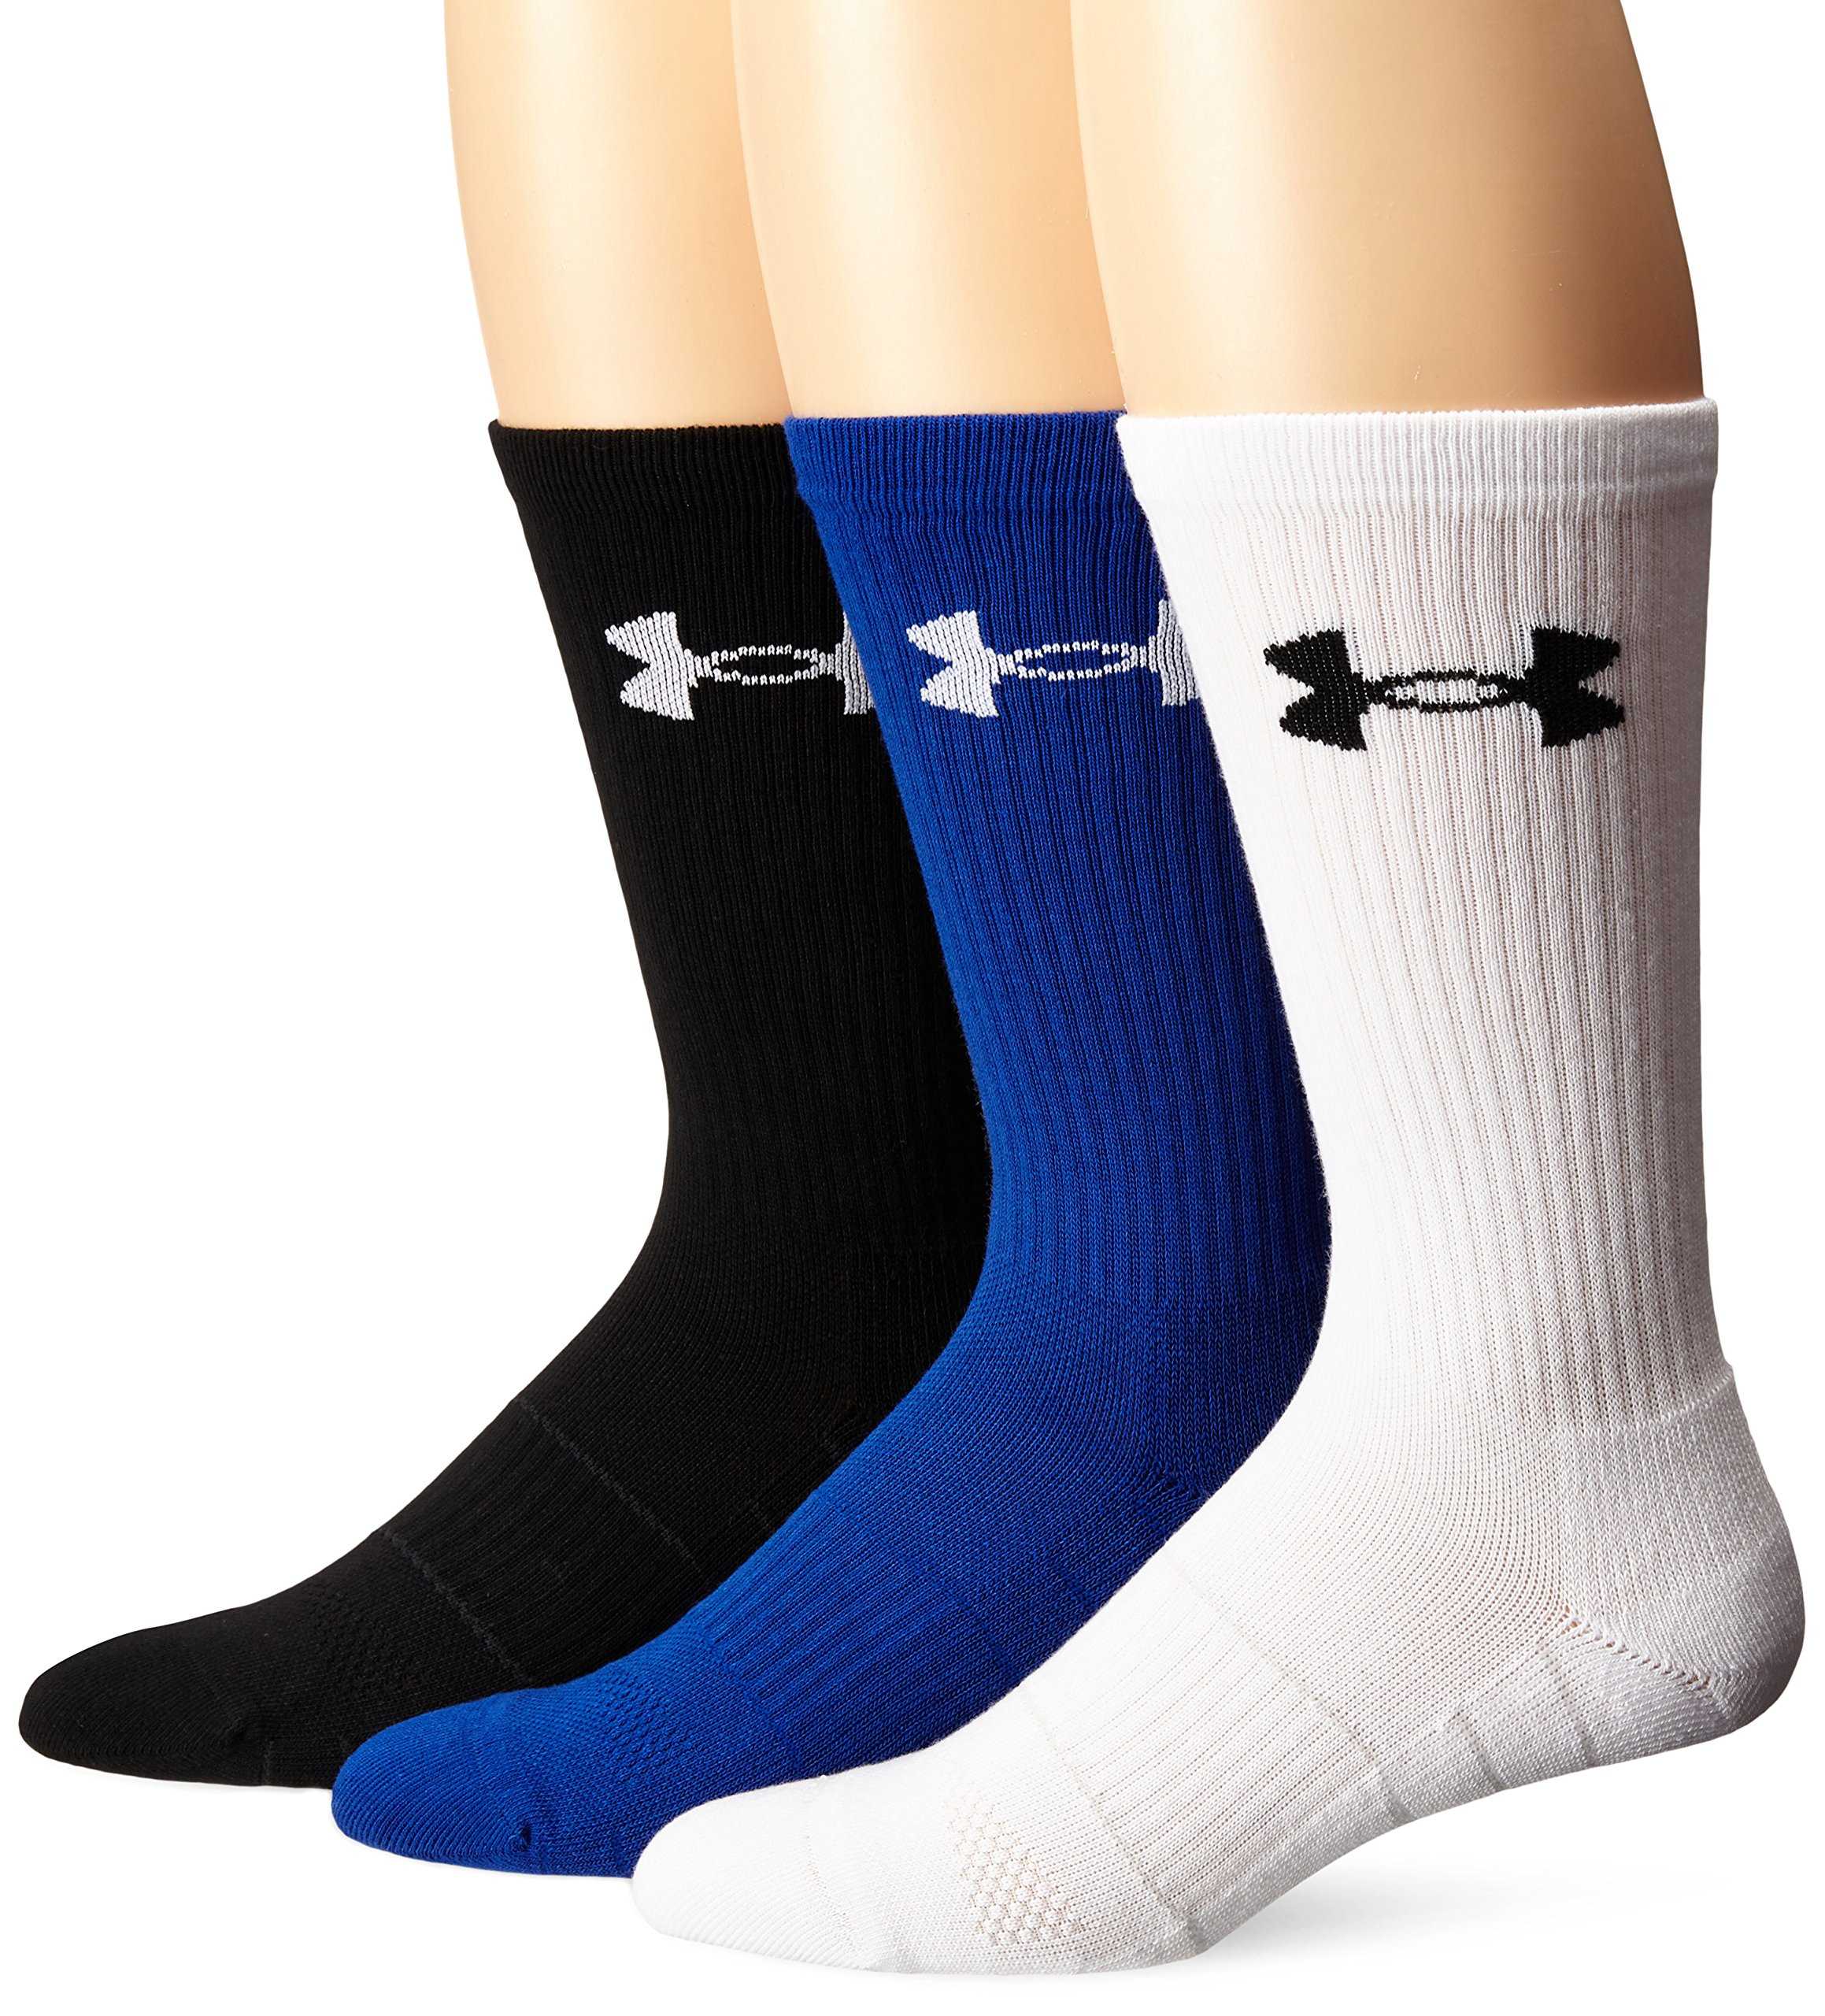 Under Armour Men's Elevated Performance Crew Socks (3 Pack), Royal Assortment, Medium by Under Armour